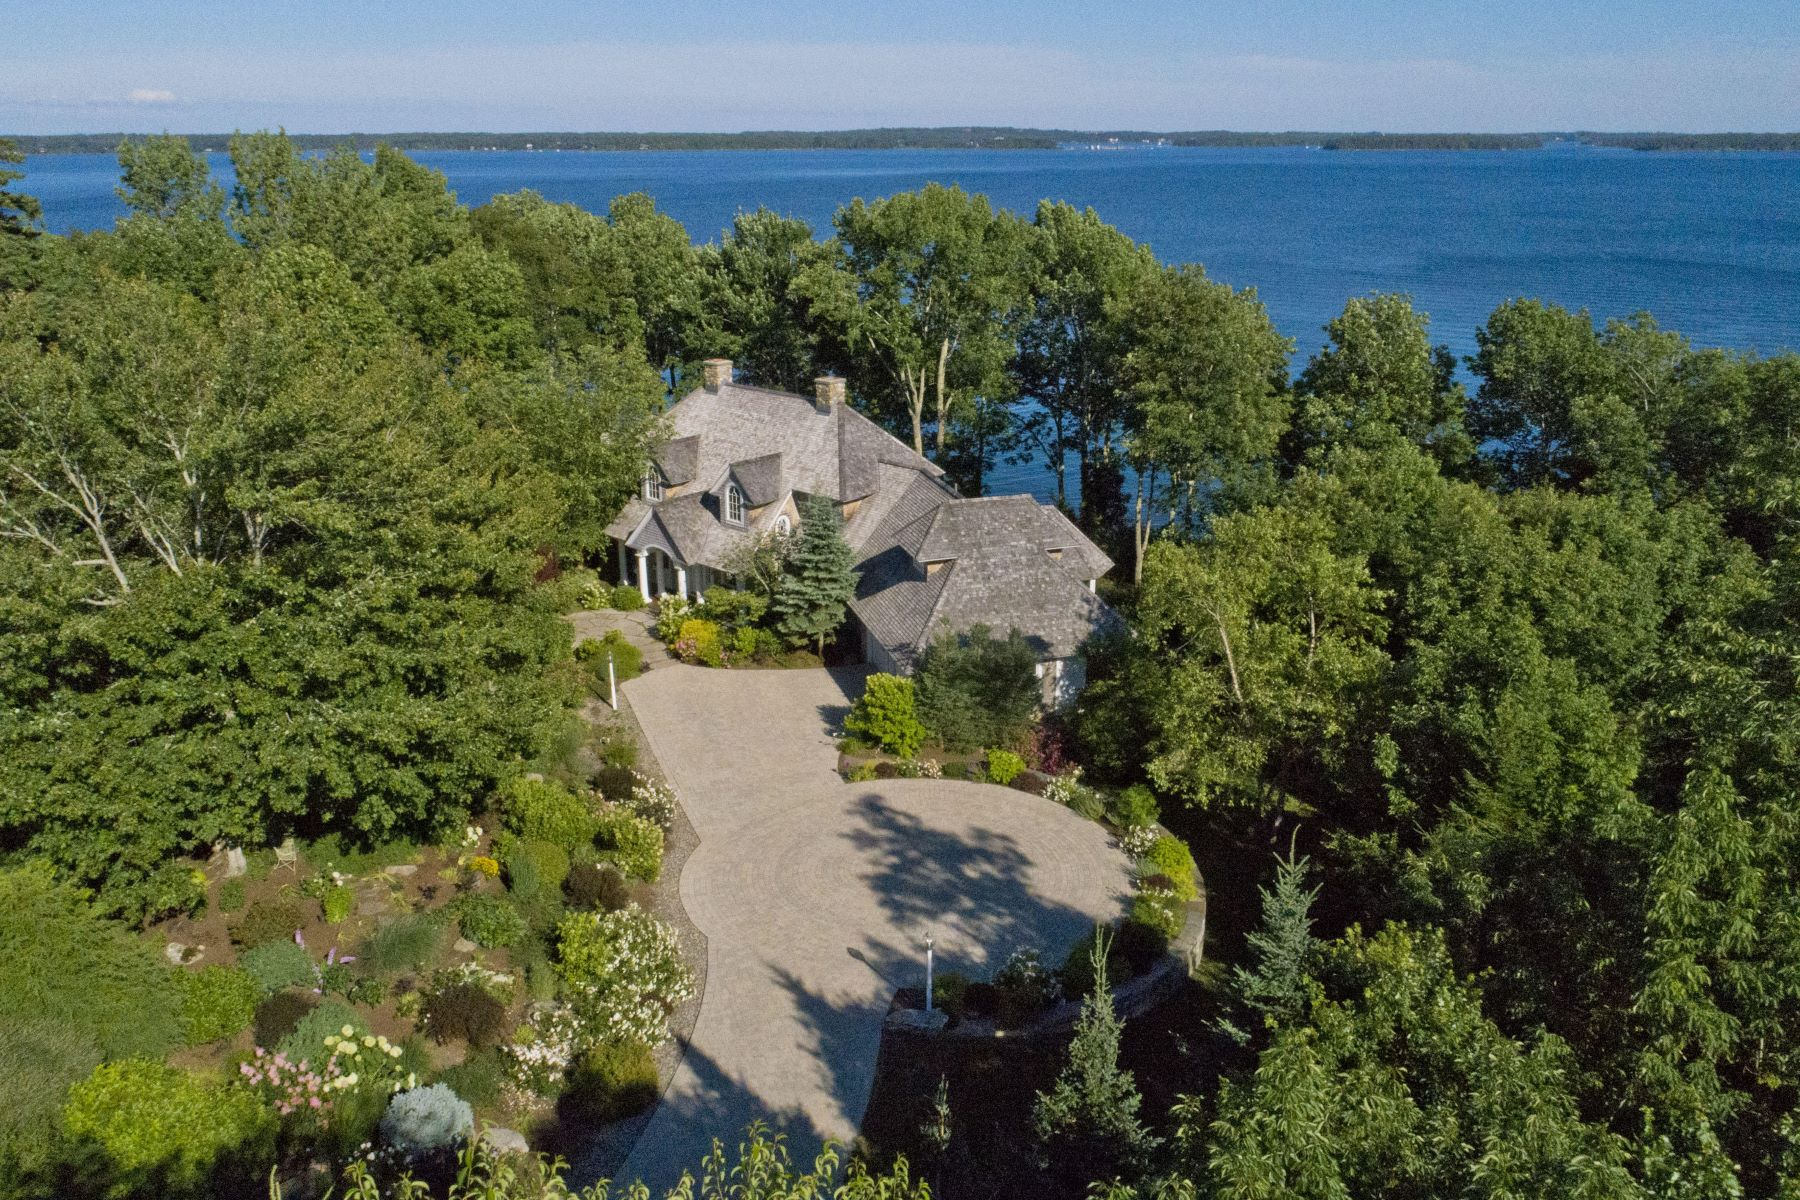 Single Family Homes for Active at 54 Catching Cove Road Northport, Maine 04849 United States